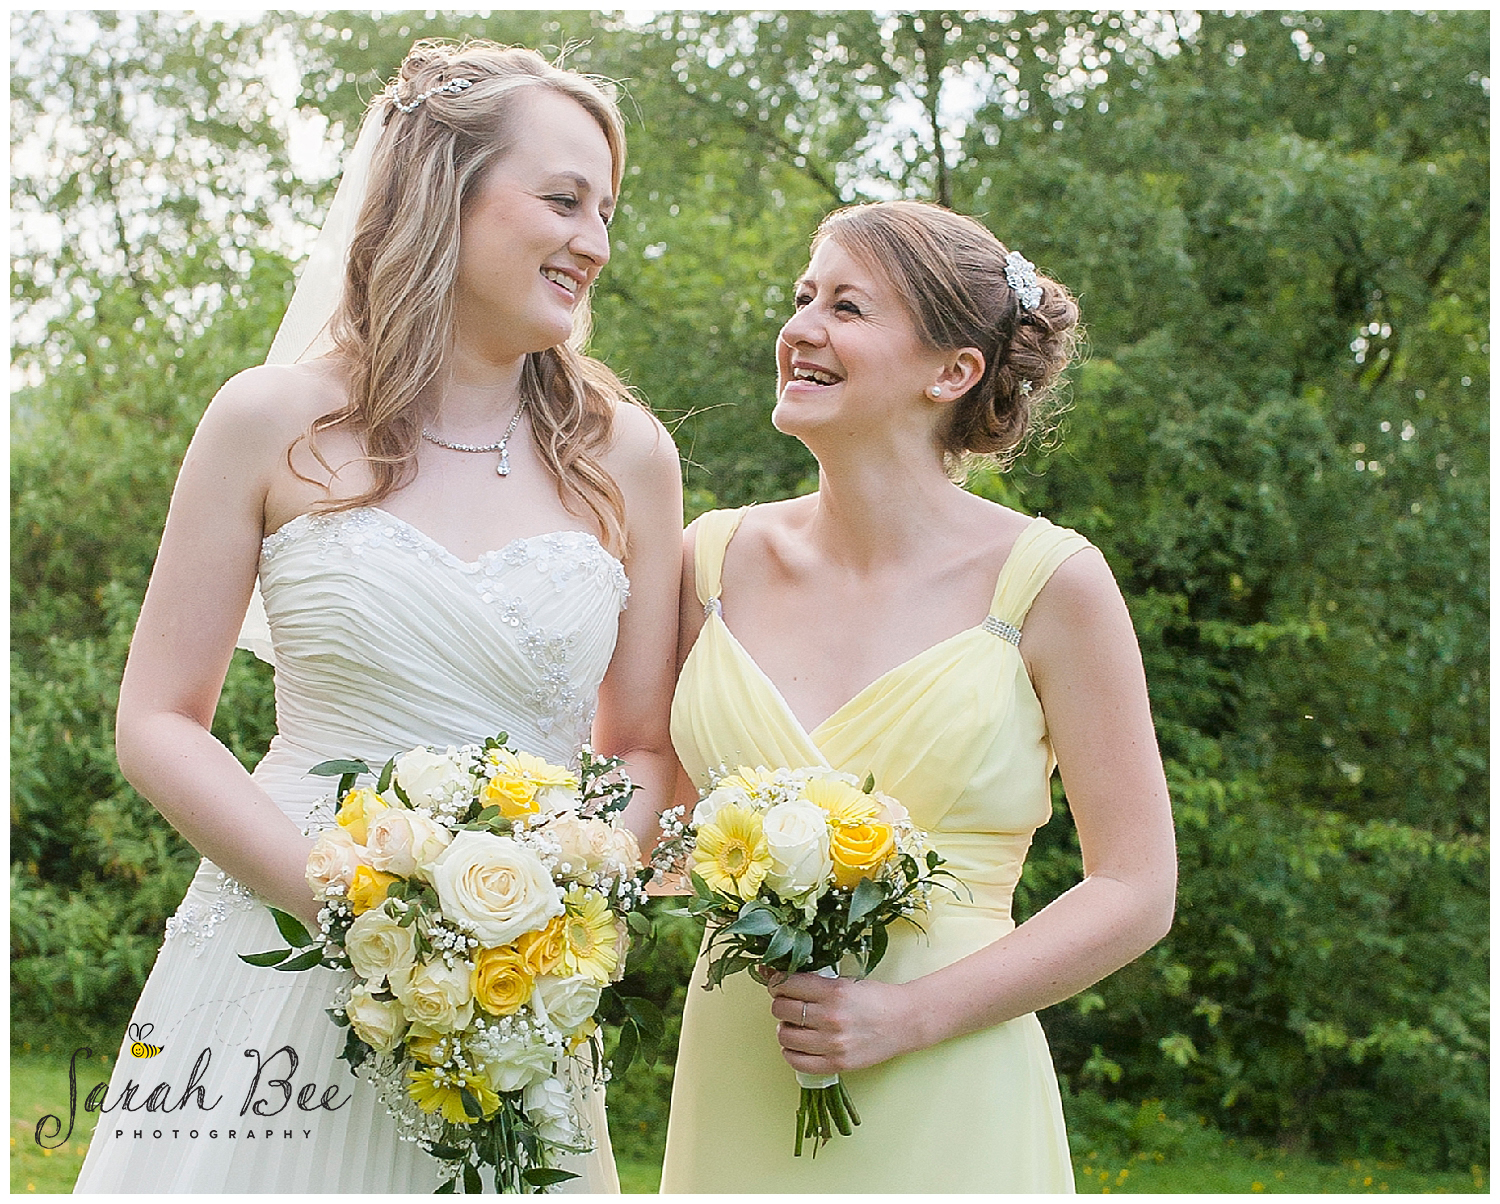 wedding photography with sarah bee photography, Peruga woodheys glossop, documentory photography wedding photographer_0207.jpg